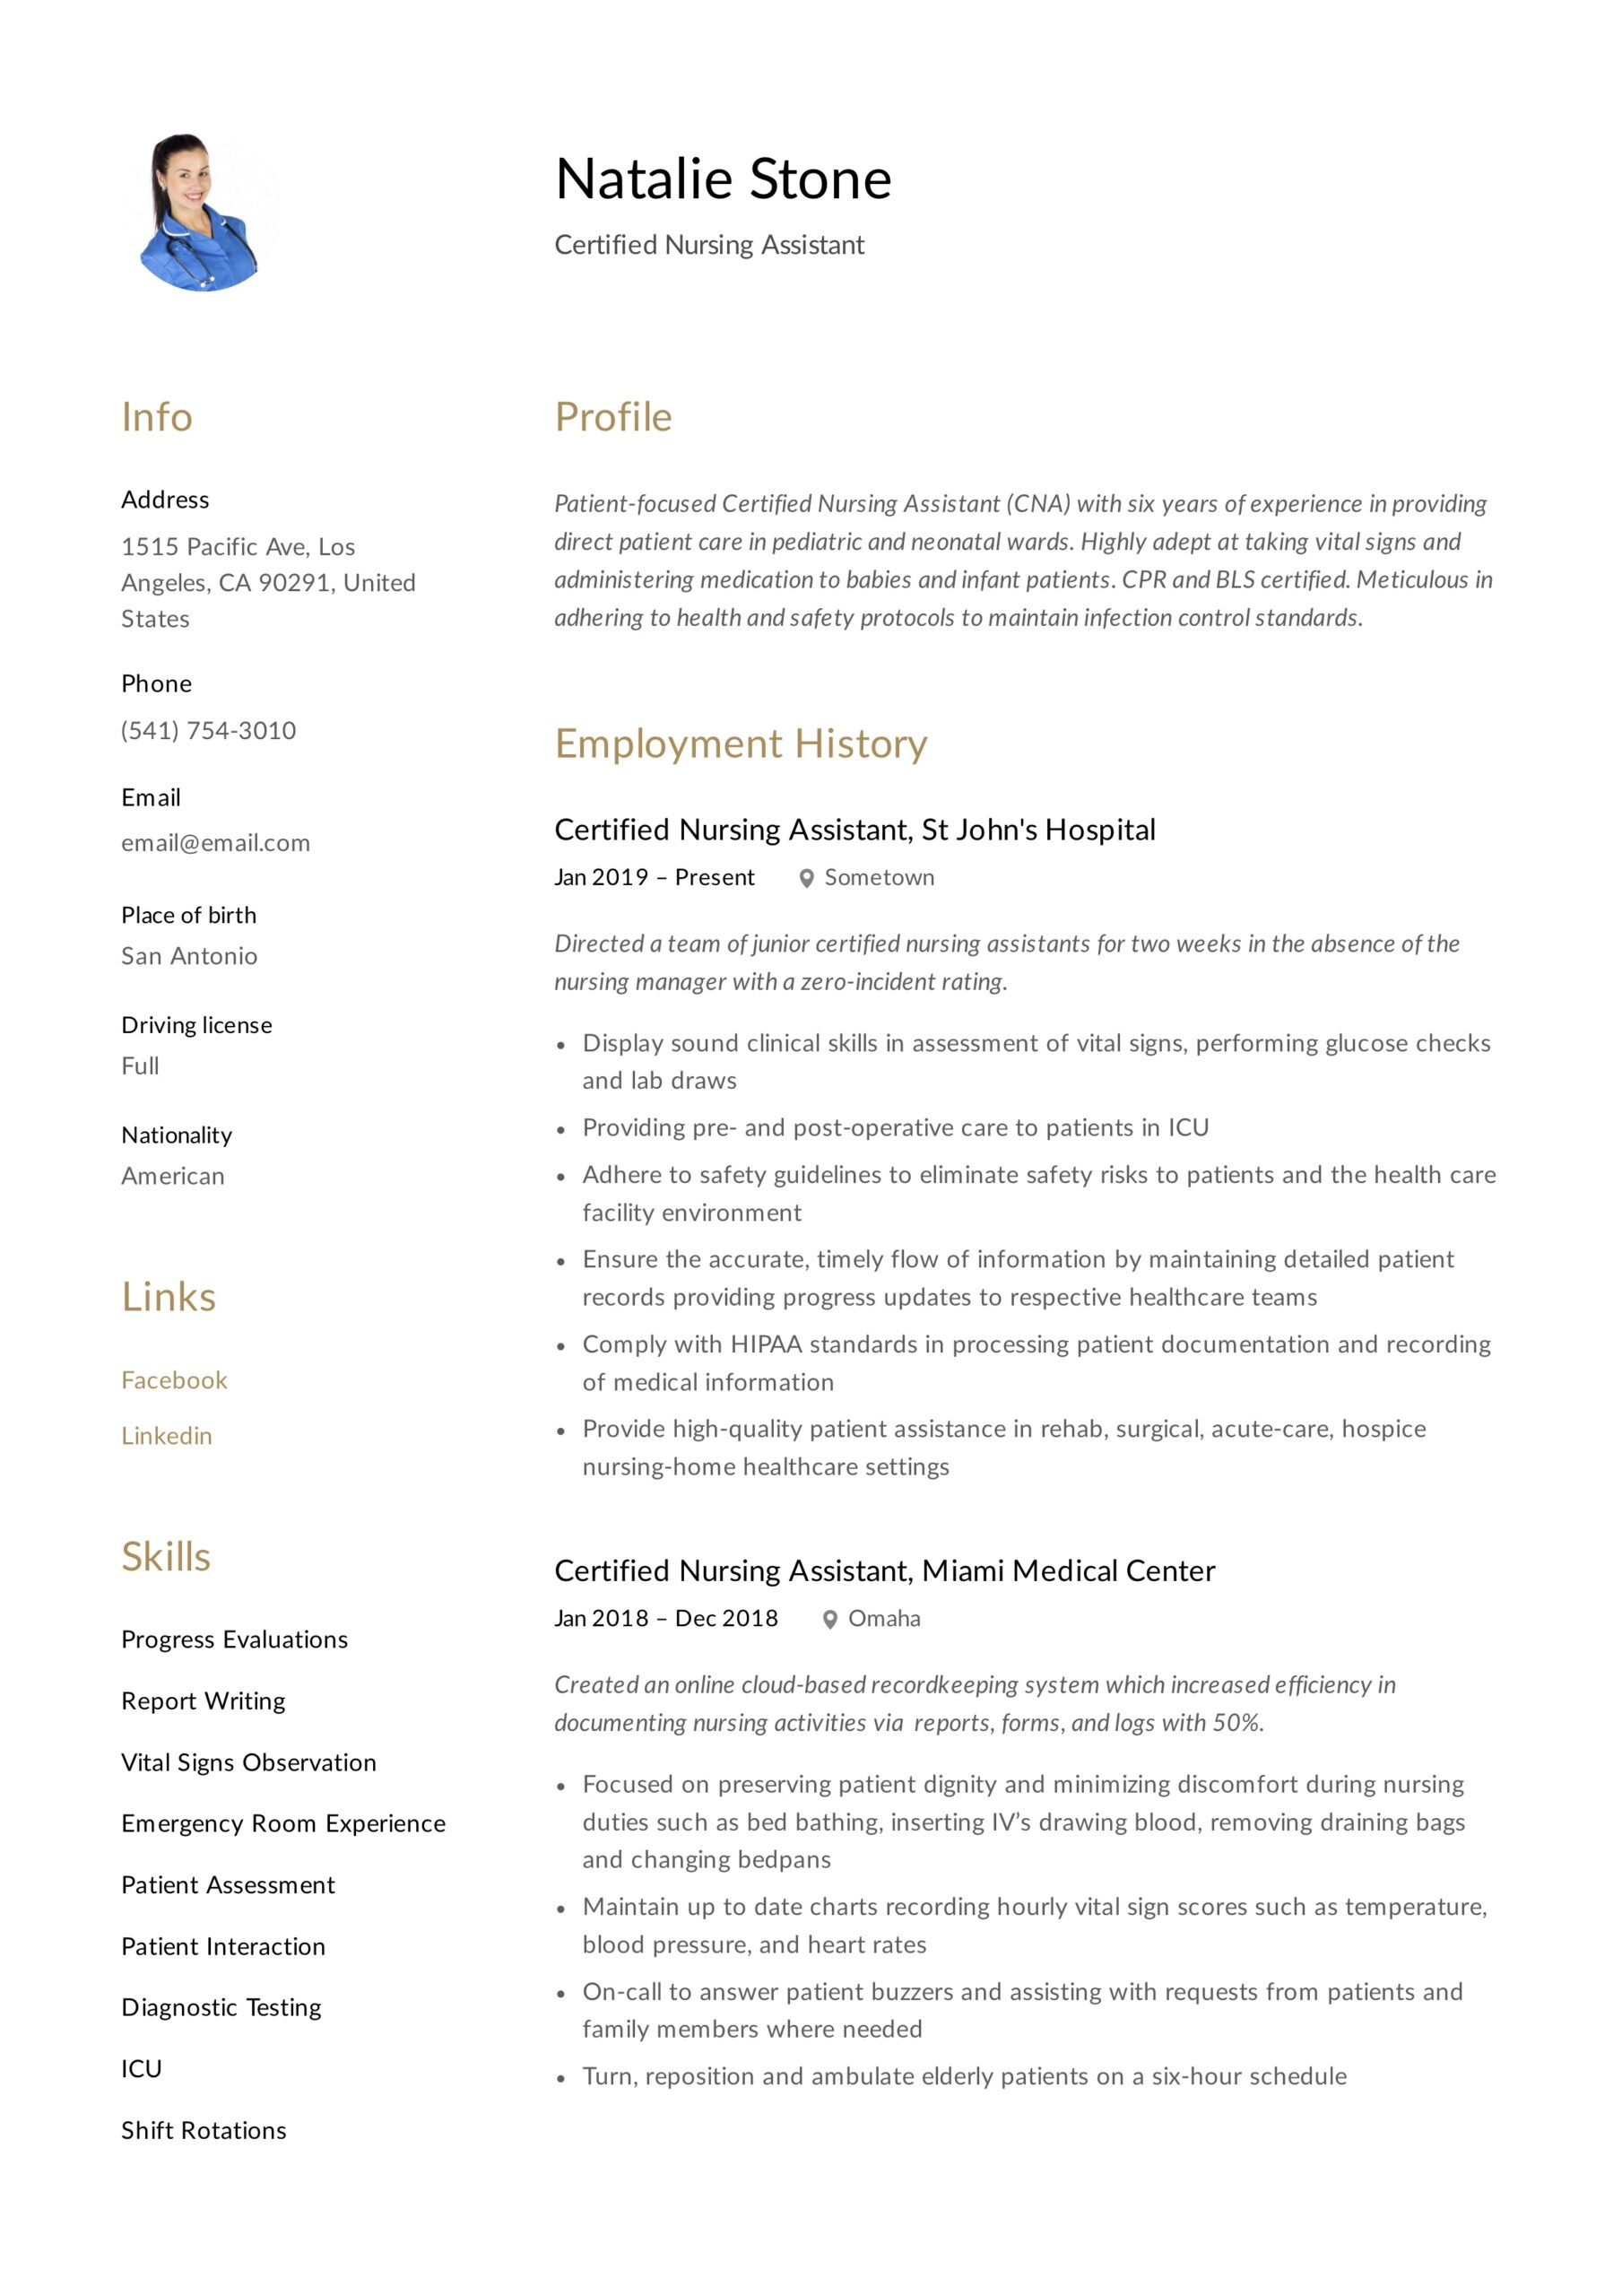 certified nursing assistant resume writing guide templates cna examples biotechnology Resume Cna Resume Examples 2020